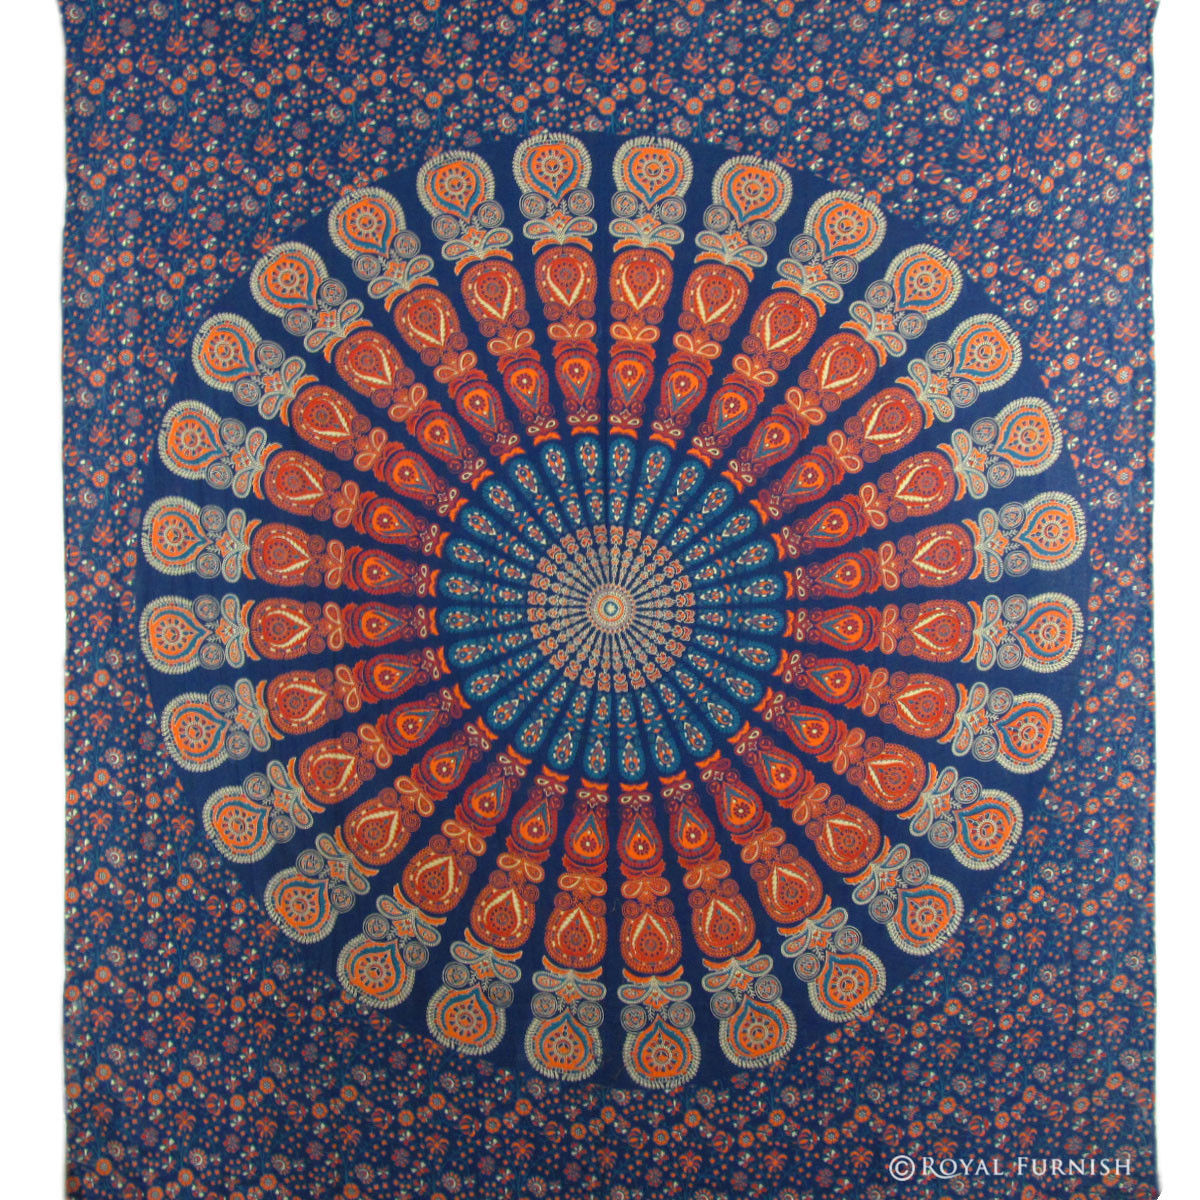 Home Decor Wall Tapestry : Blue indian floral mandala dorm room decor hippie tapestry